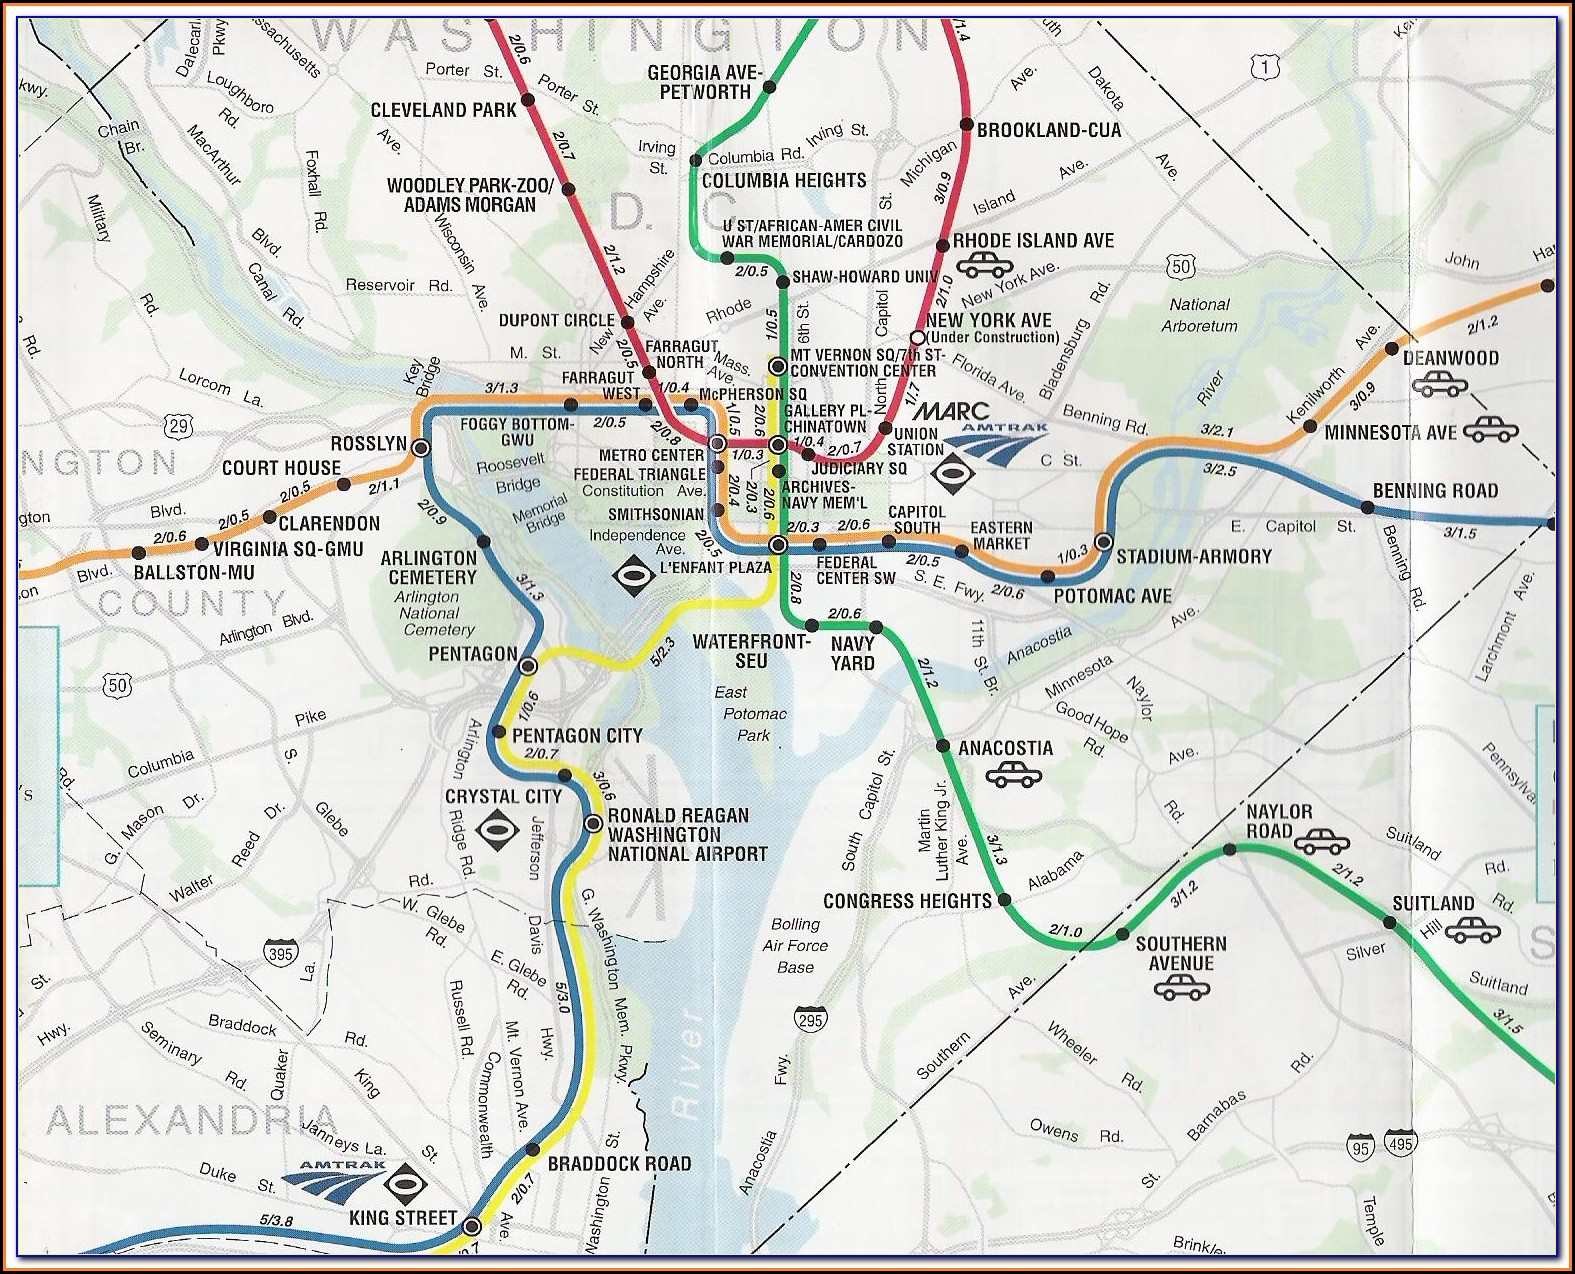 Street Map Of Washington Dc With Metro Stops